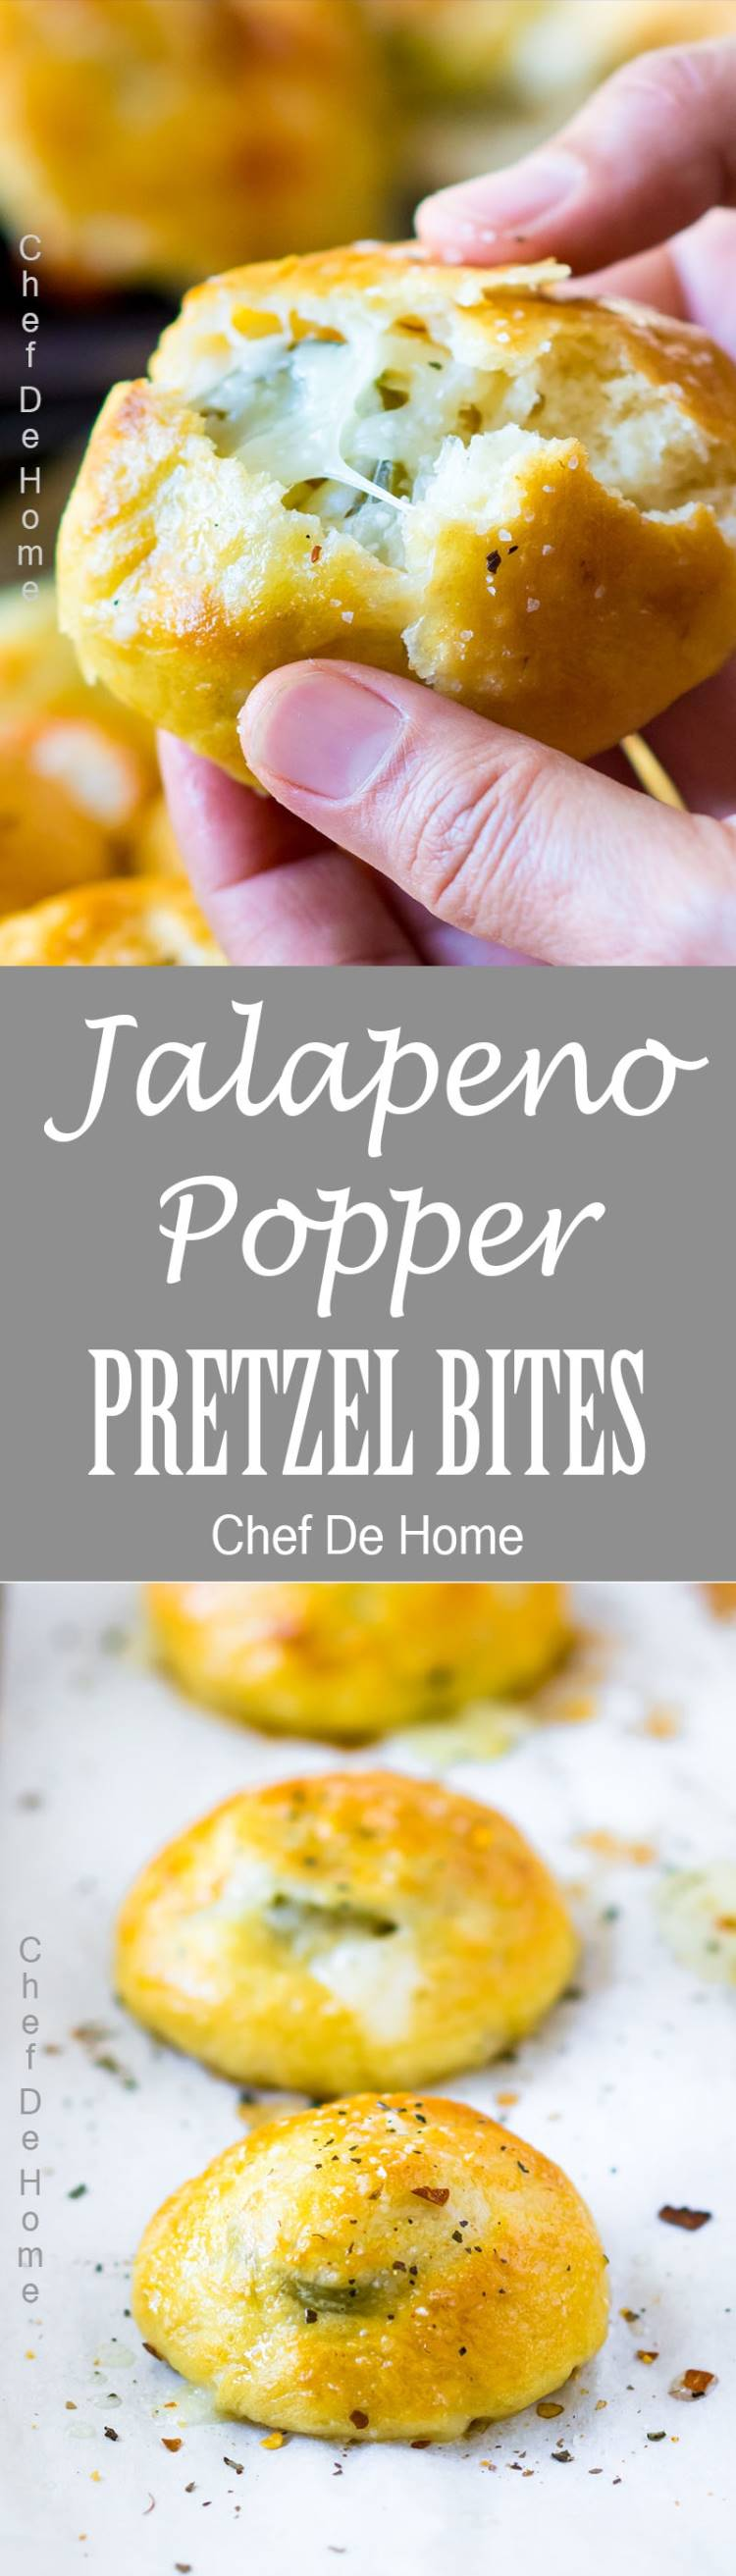 Best appetizer for game day Pretzel Bites with cheesy surprise of Jalapeno Popper in the middle | chefdehome.com